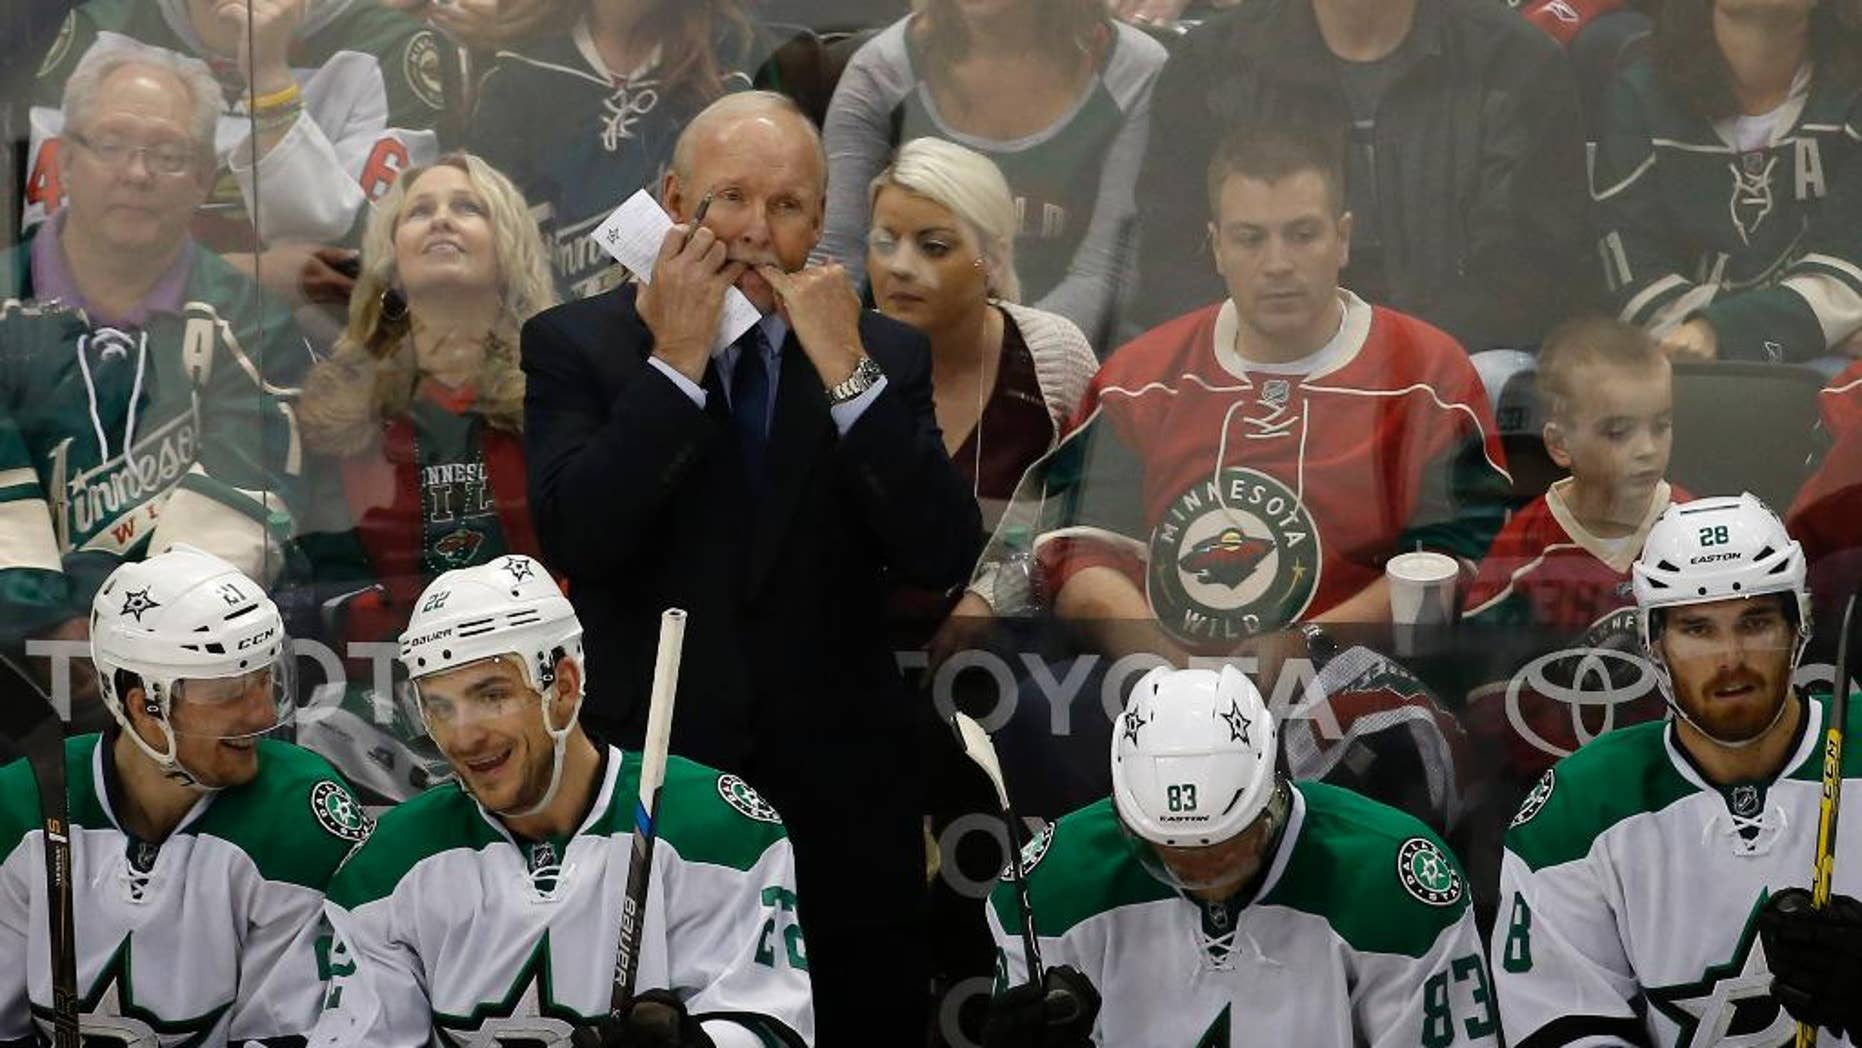 Dallas Stars head coach Lindy Ruff, top, whistles to his players during the second period of Game 6 in the first round of the NHL Stanley Cup playoffs against the Minnesota Wild in St. Paul, Minn., Sunday, April 24, 2016. The Stars won 5-4 to advance to the second round. (AP Photo/Ann Heisenfelt)